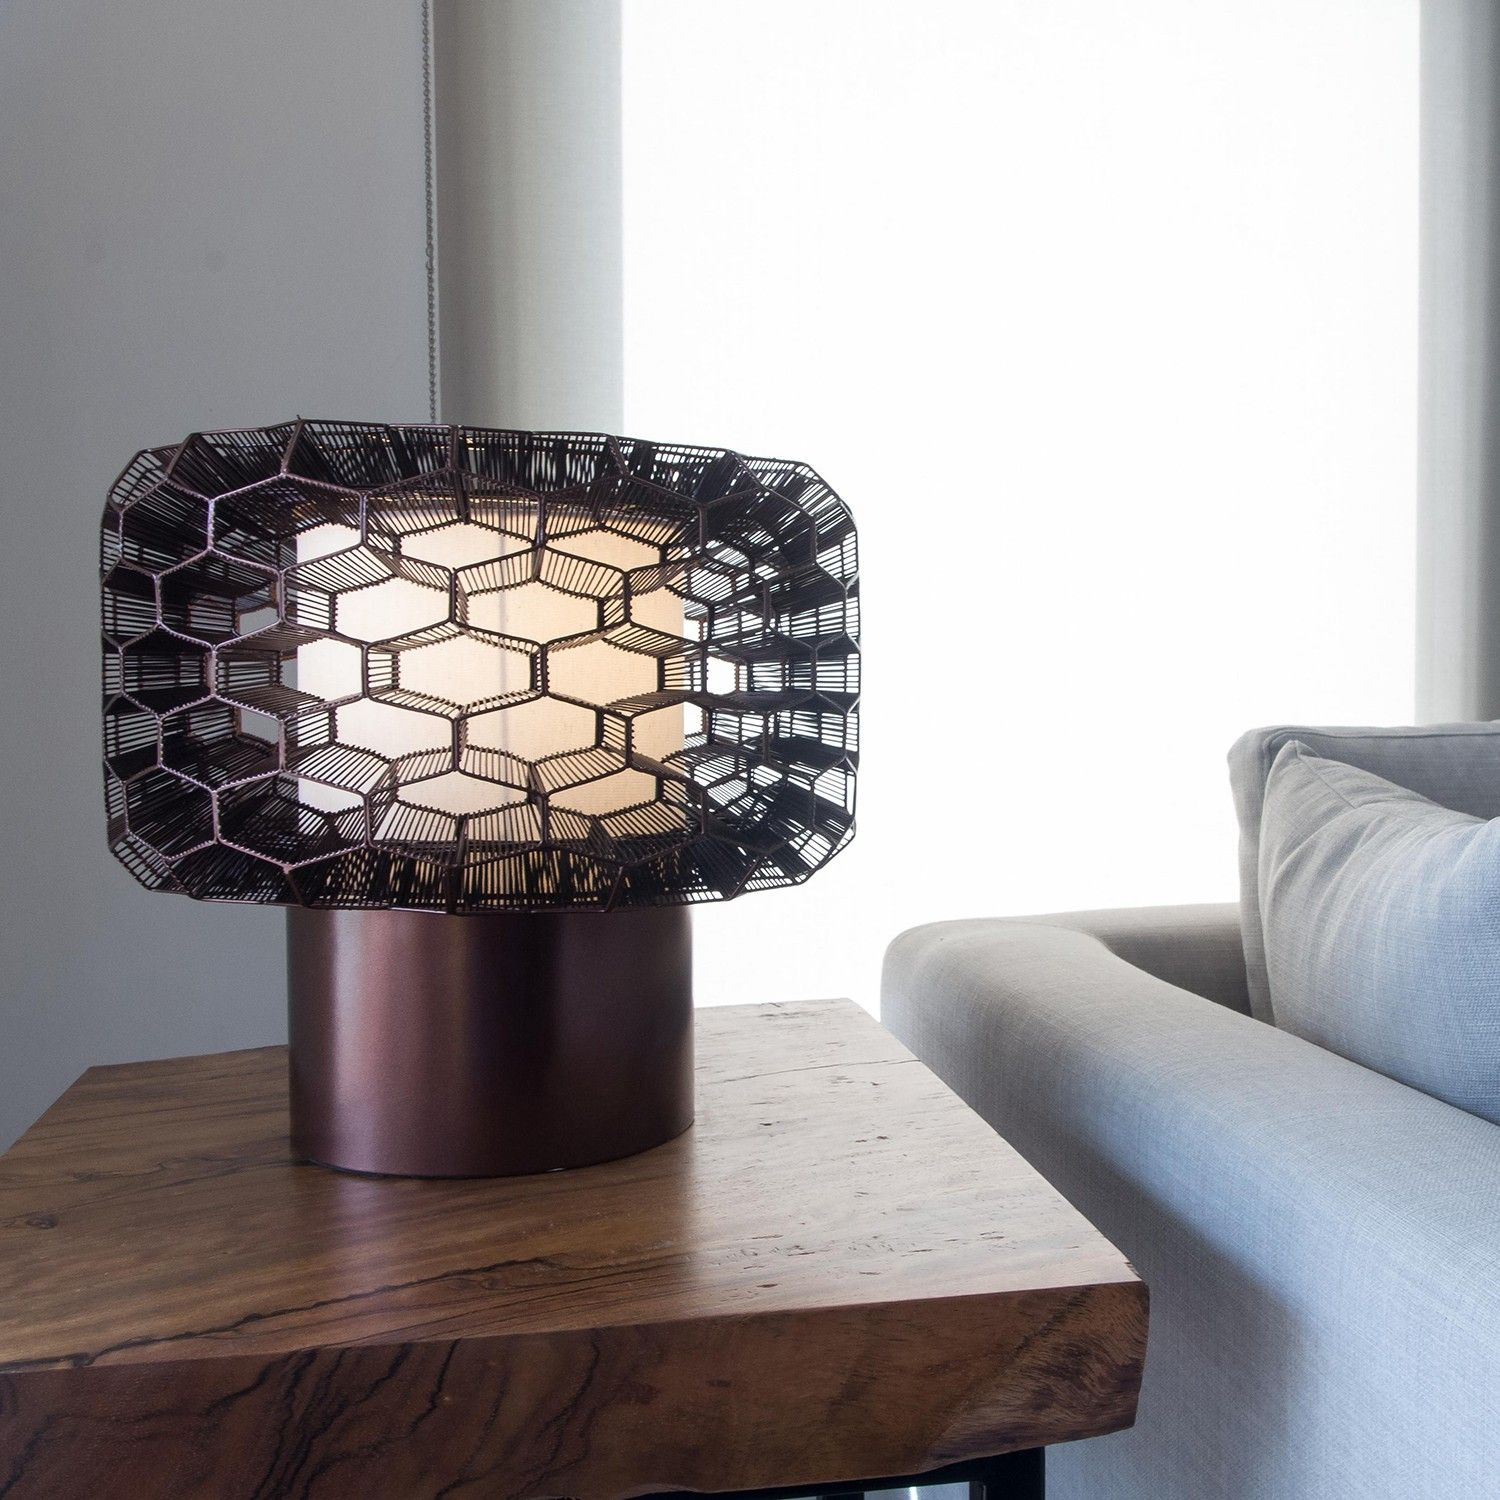 The Honeycomb Led Table Lamp Is Handmade In The Philippines From Galvanized Iron A Malleable Material Which Allows Artisans To With Images Led Table Lamp Lamp Table Lamp